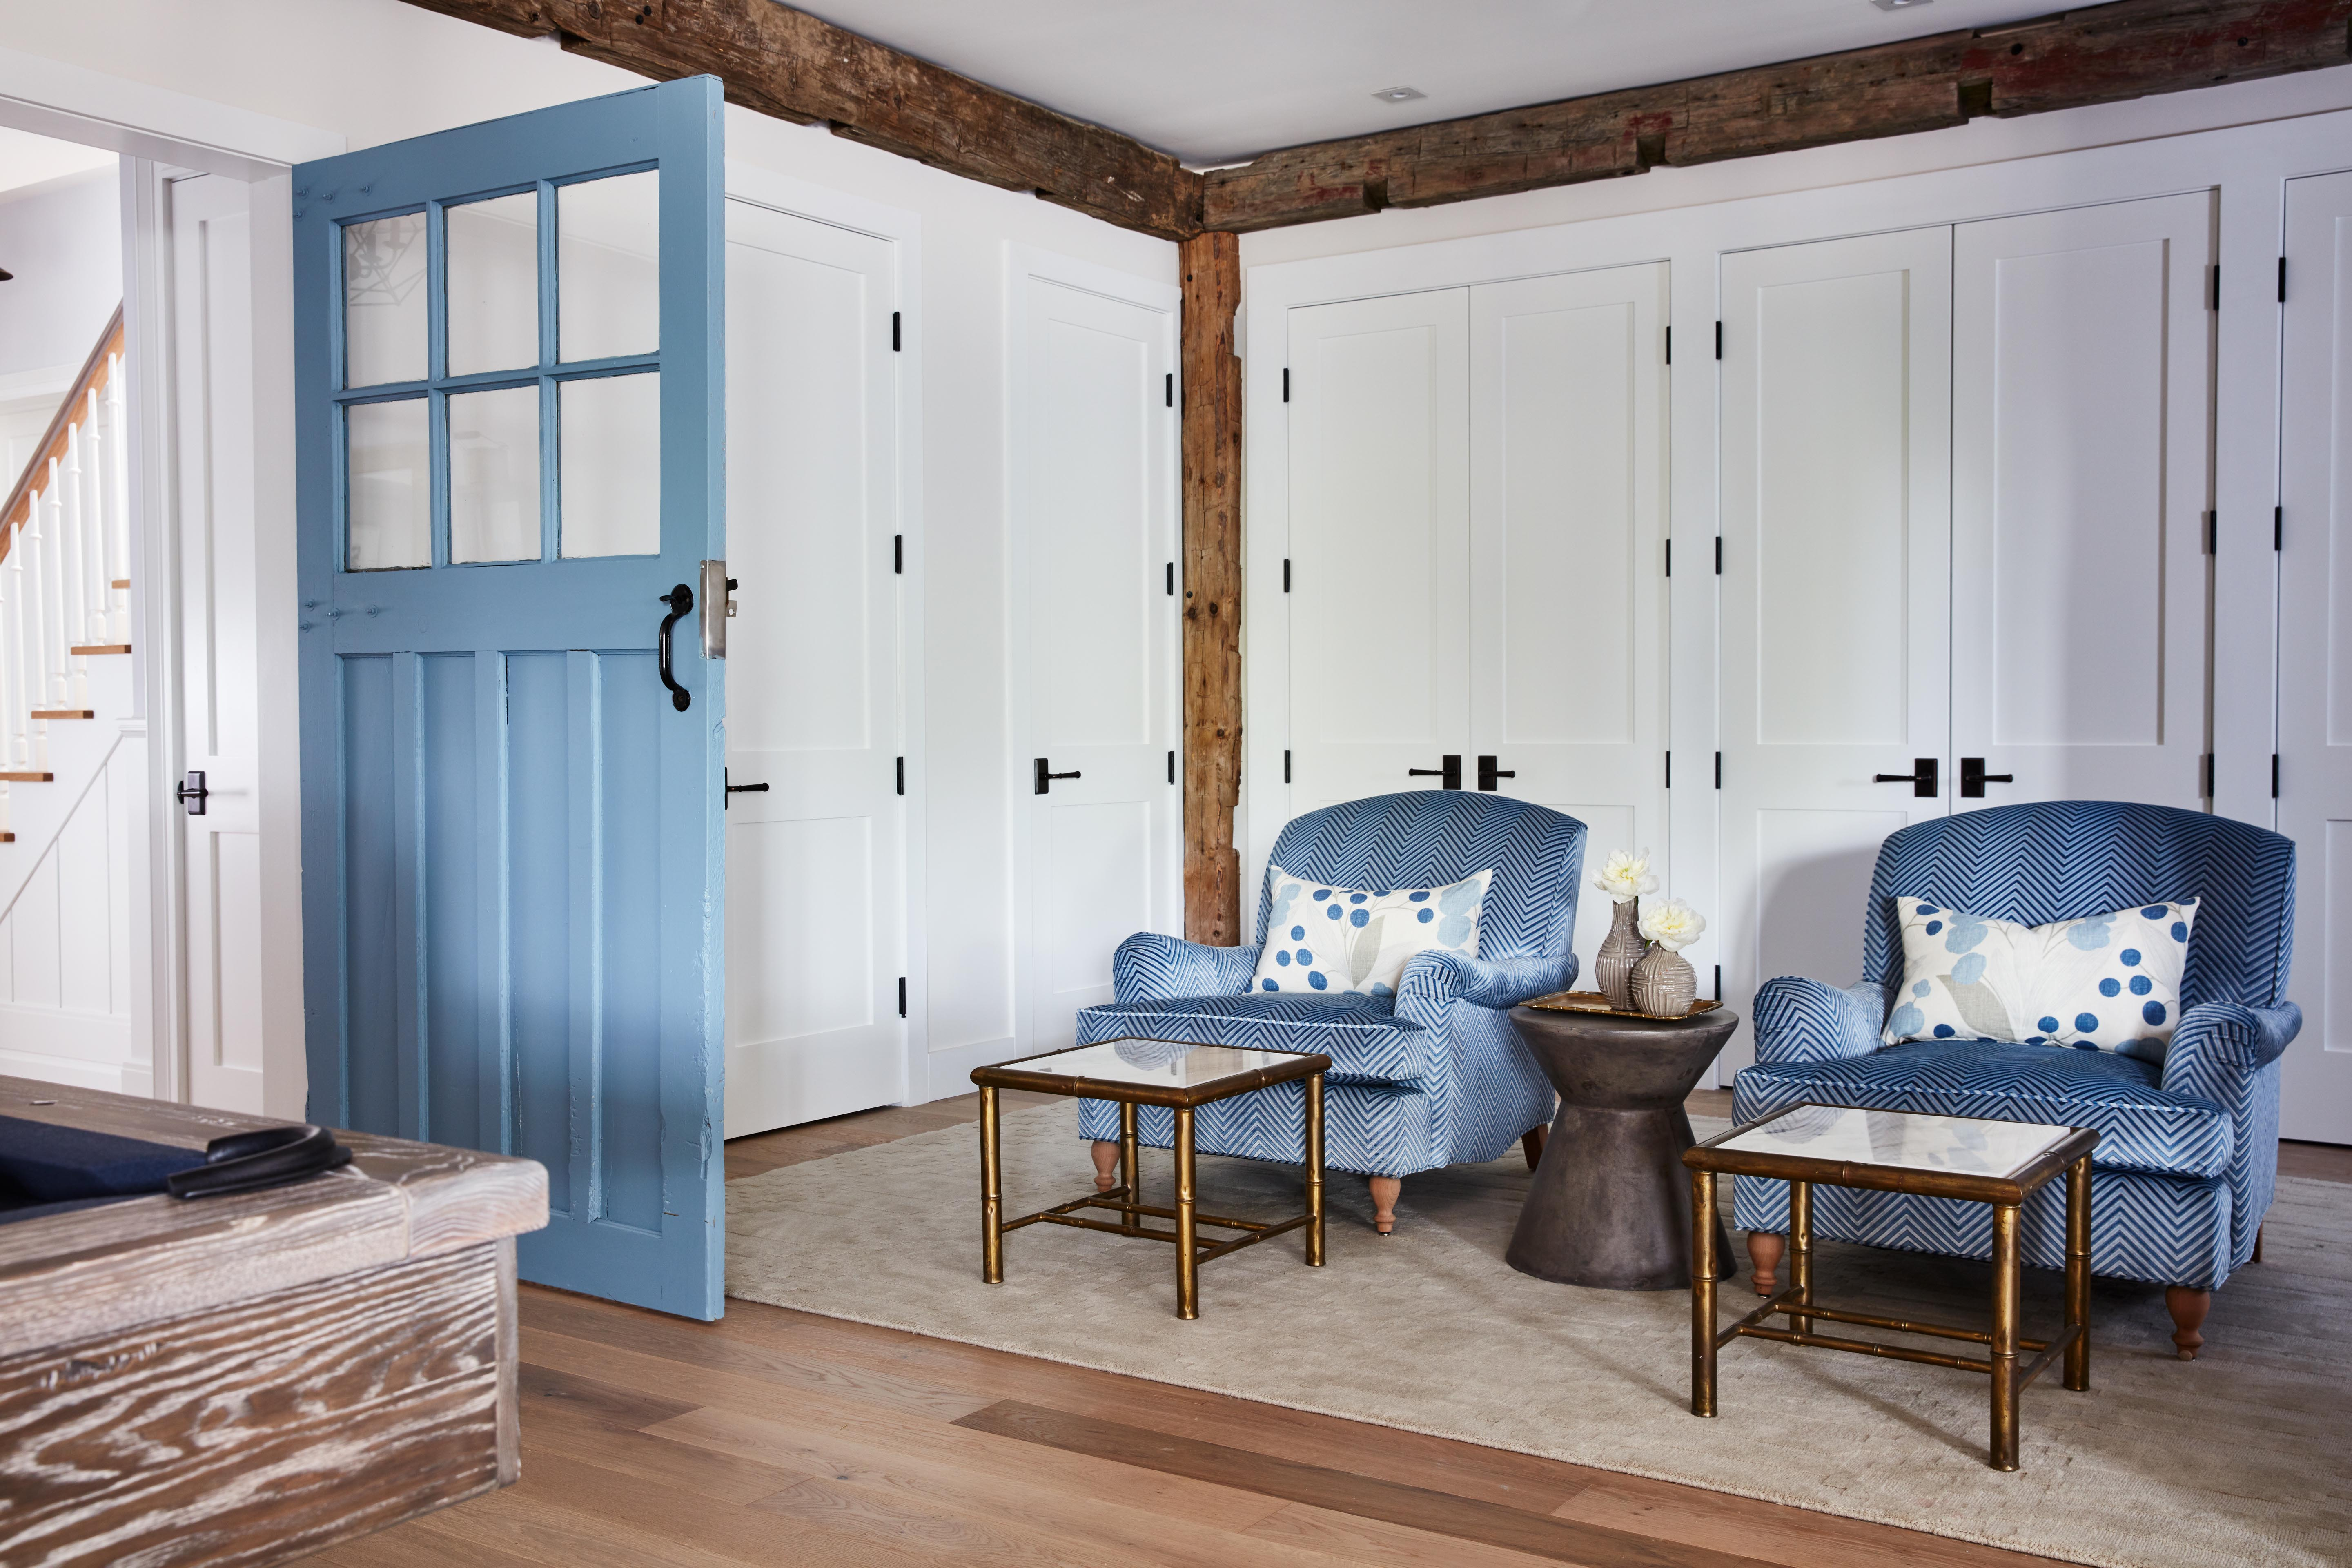 Cheerful blue armchairs and door in traditional home by #SarahRichardson #bluedoor #modernfarmhouse